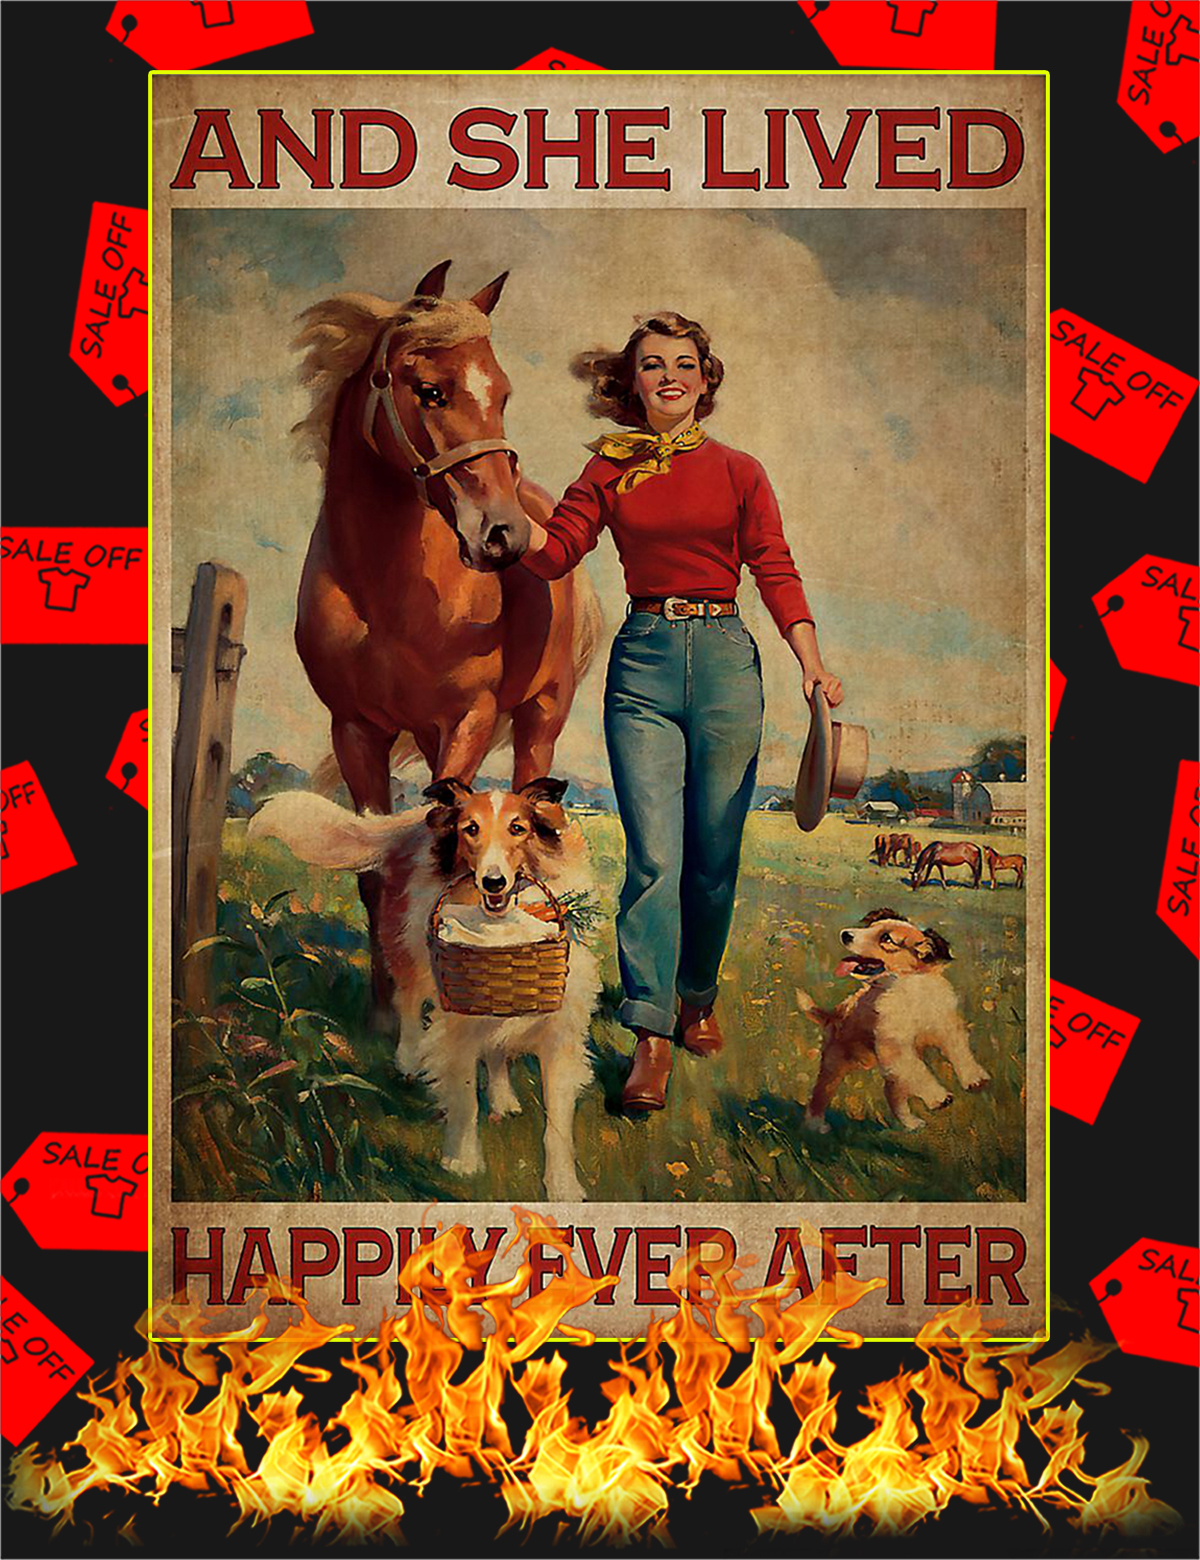 Dogs and horse And she lived happily ever after poster - A1